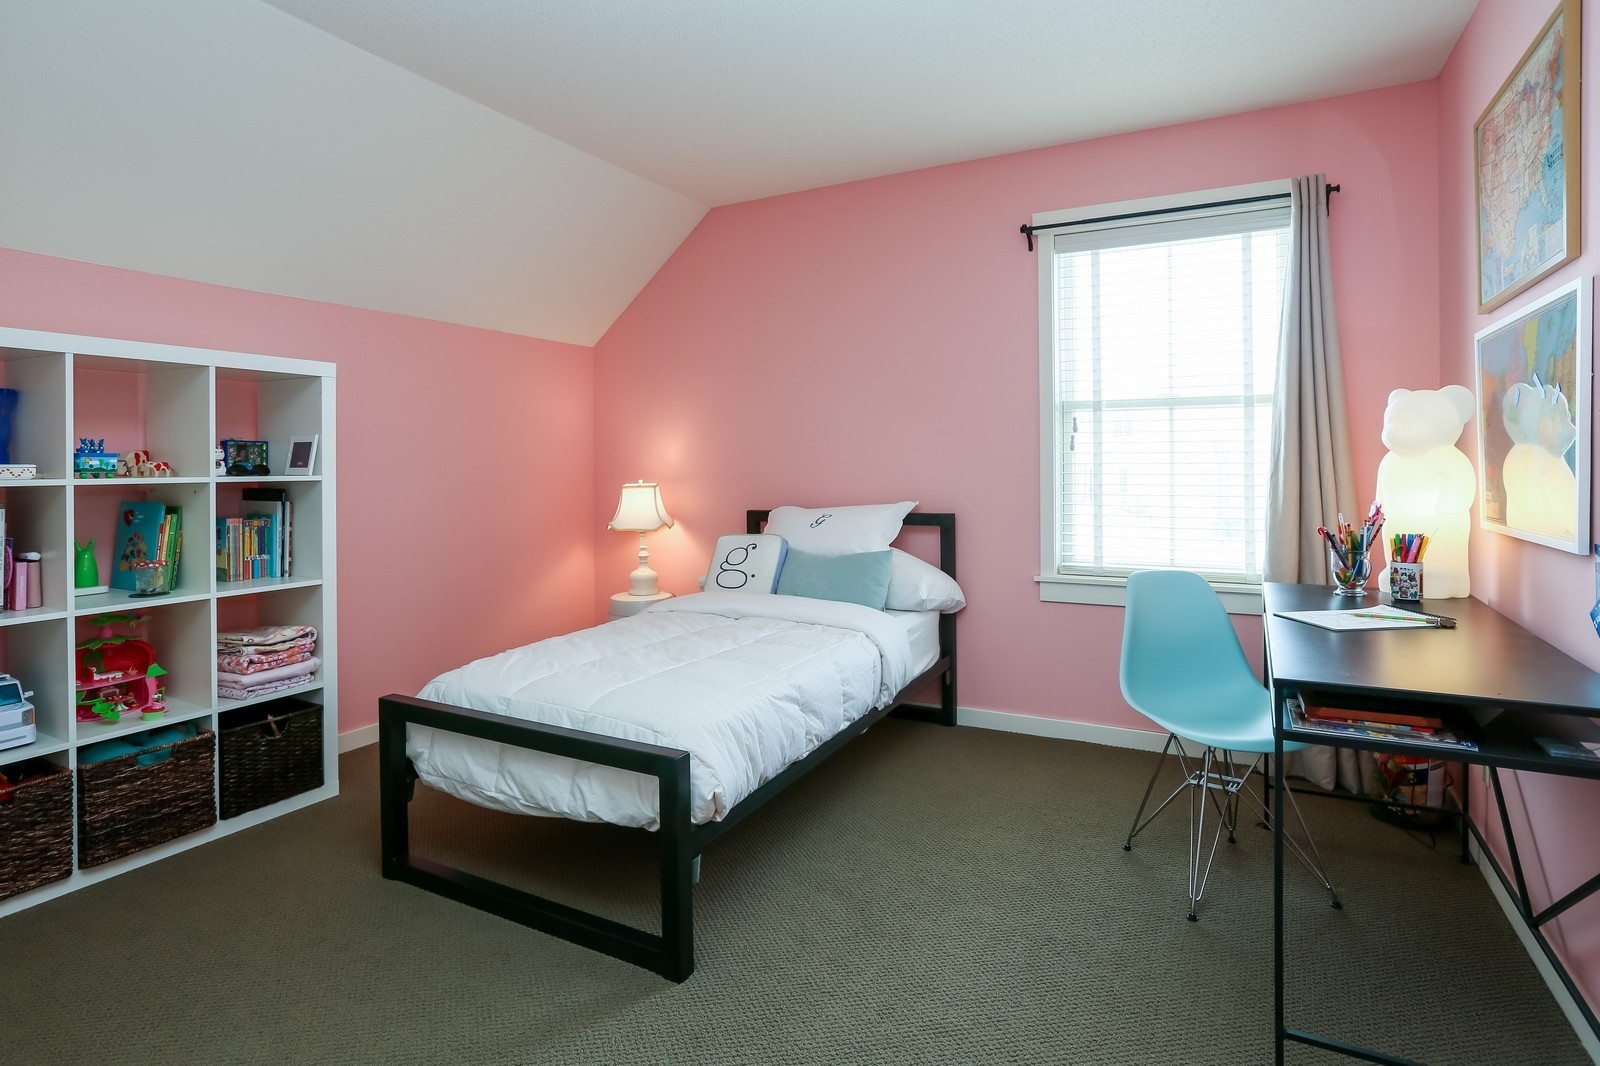 Real Estate Photography - 170 Rutherford Rd, Stillwater, MN, 55082 - 2nd Bedroom